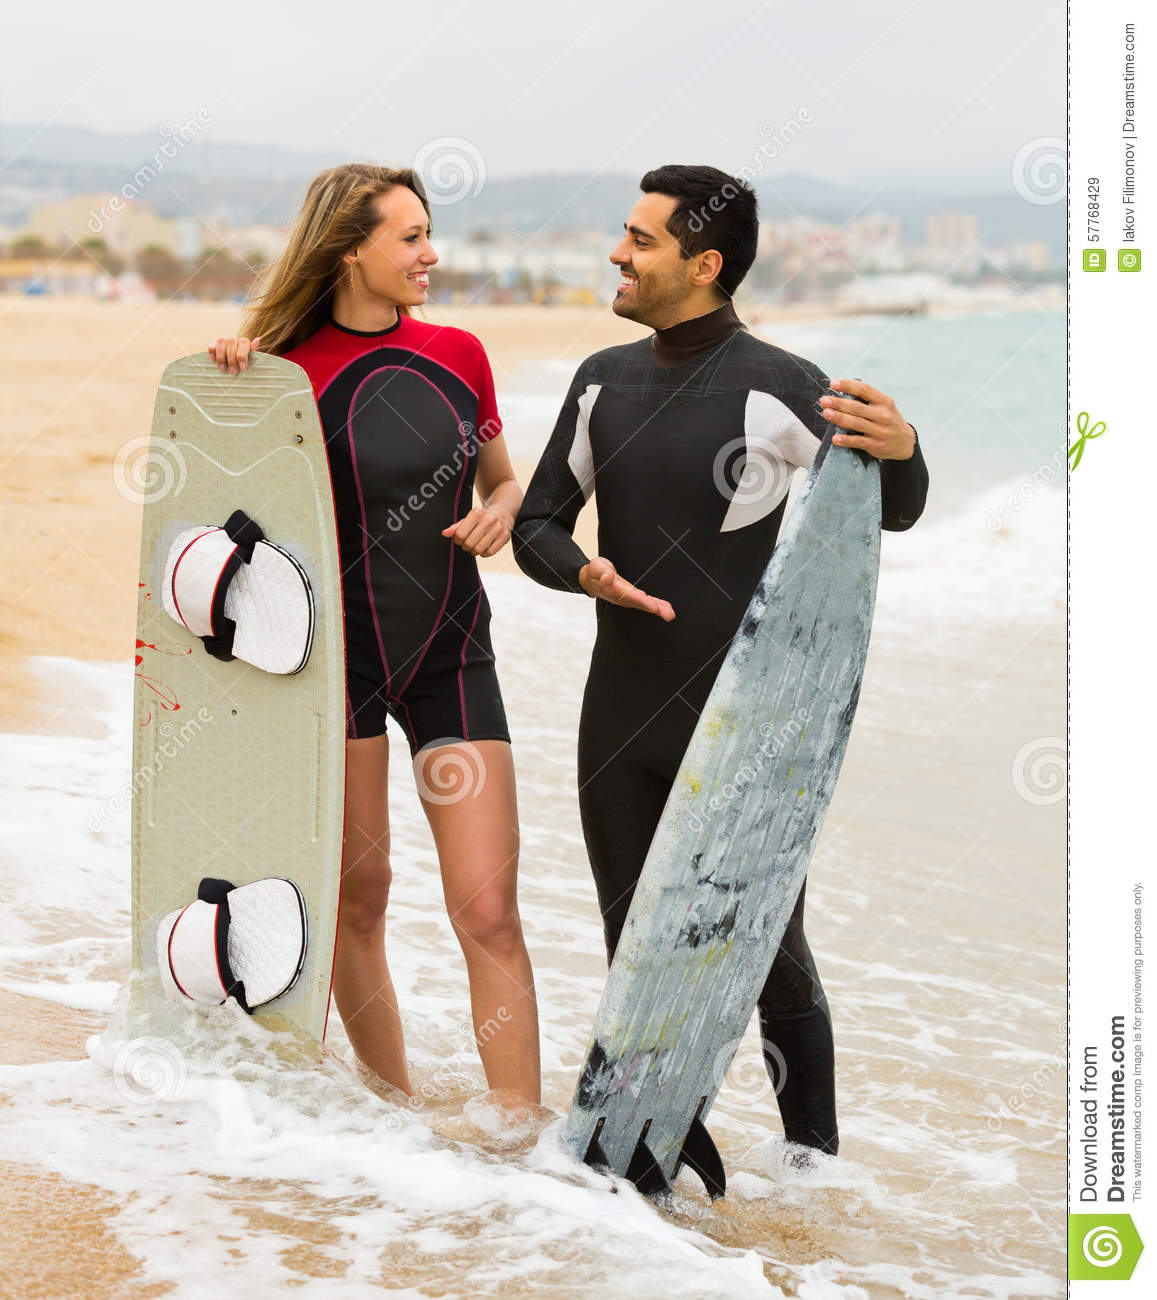 Couple At The Beach Stock Image Image Of Caucasian: Couple With Surf Boards On The Beach Stock Image